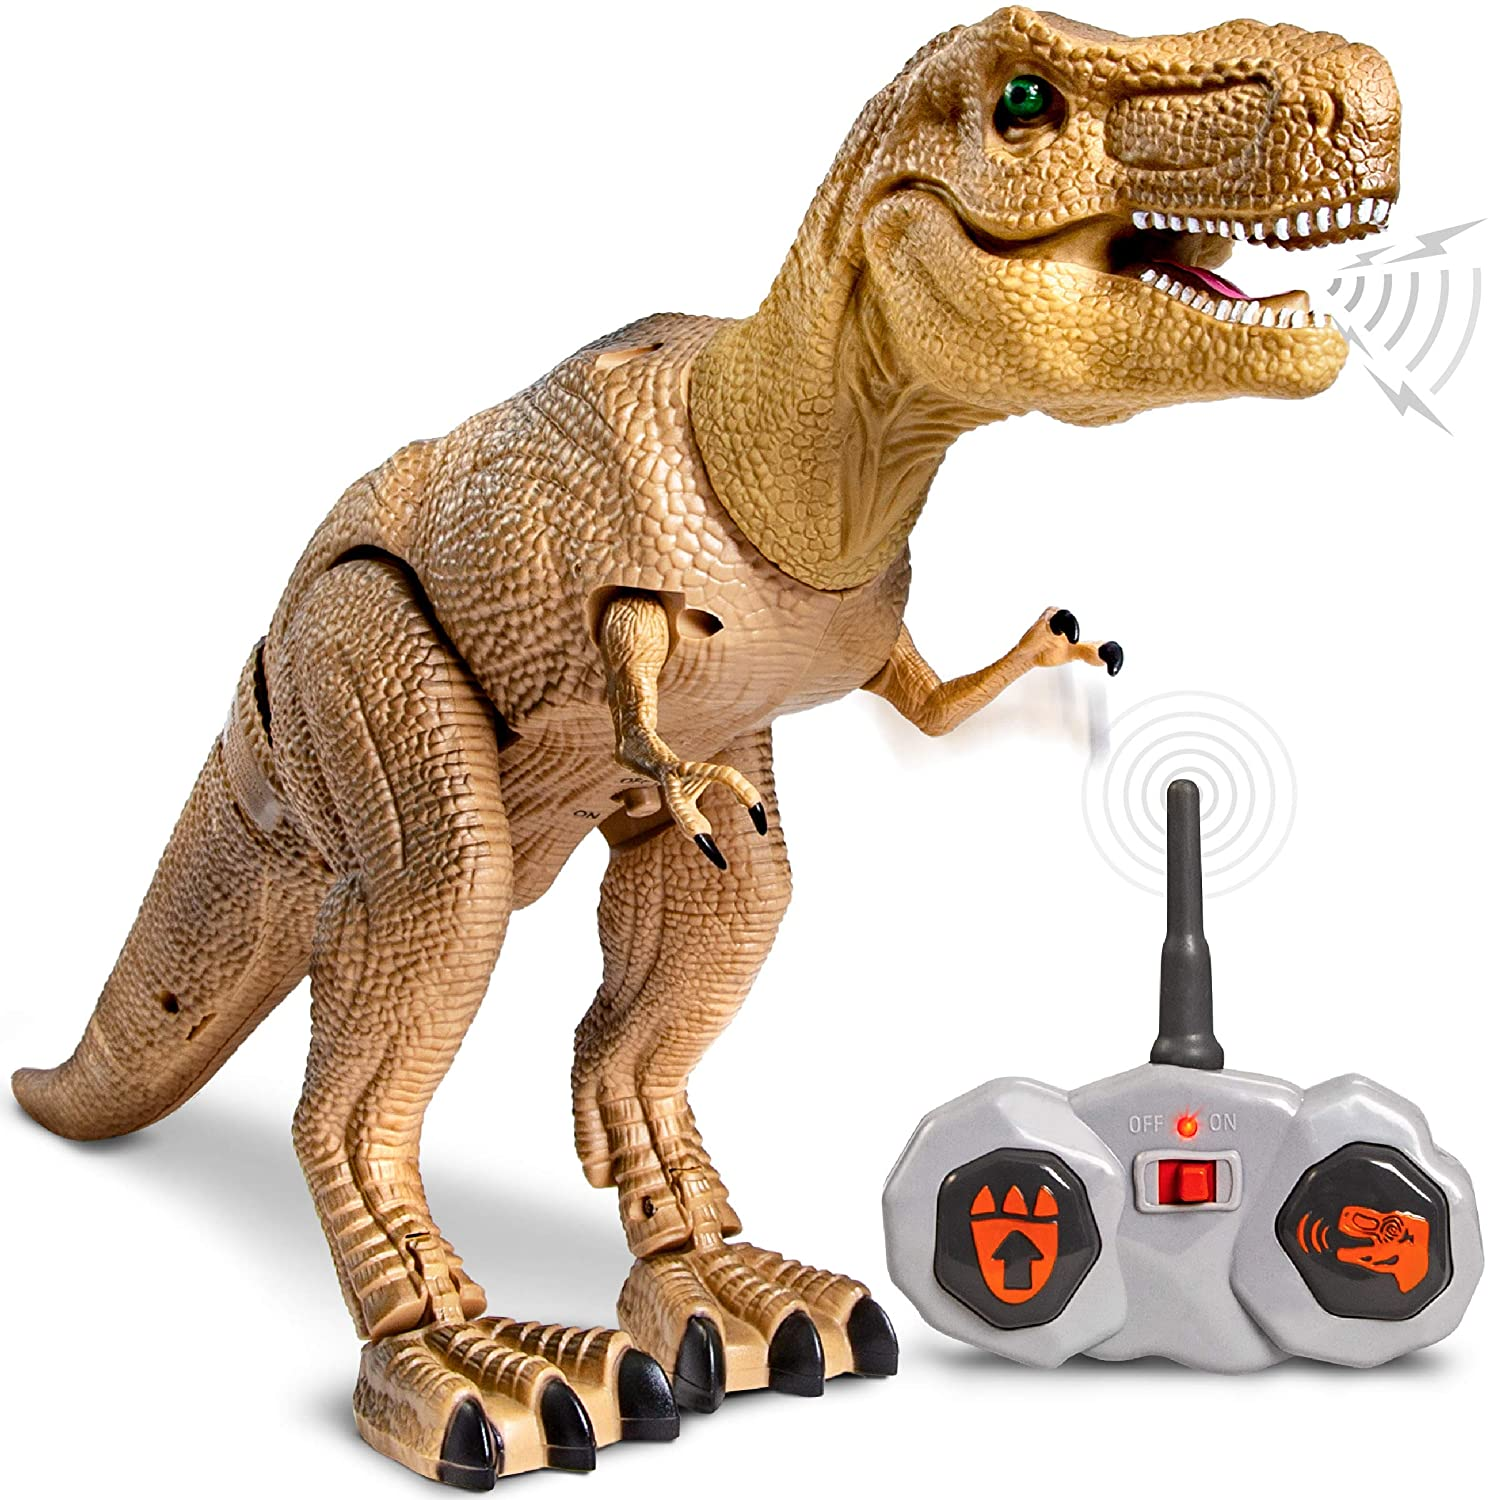 Discovery Kids Remote Control RC T Rex Dinosaur Electronic Toy Action Figure Moving Walking Robot w Roaring Sounds Chomping Mouth Realistic Plastic Model Boys Girls 6 Years Old